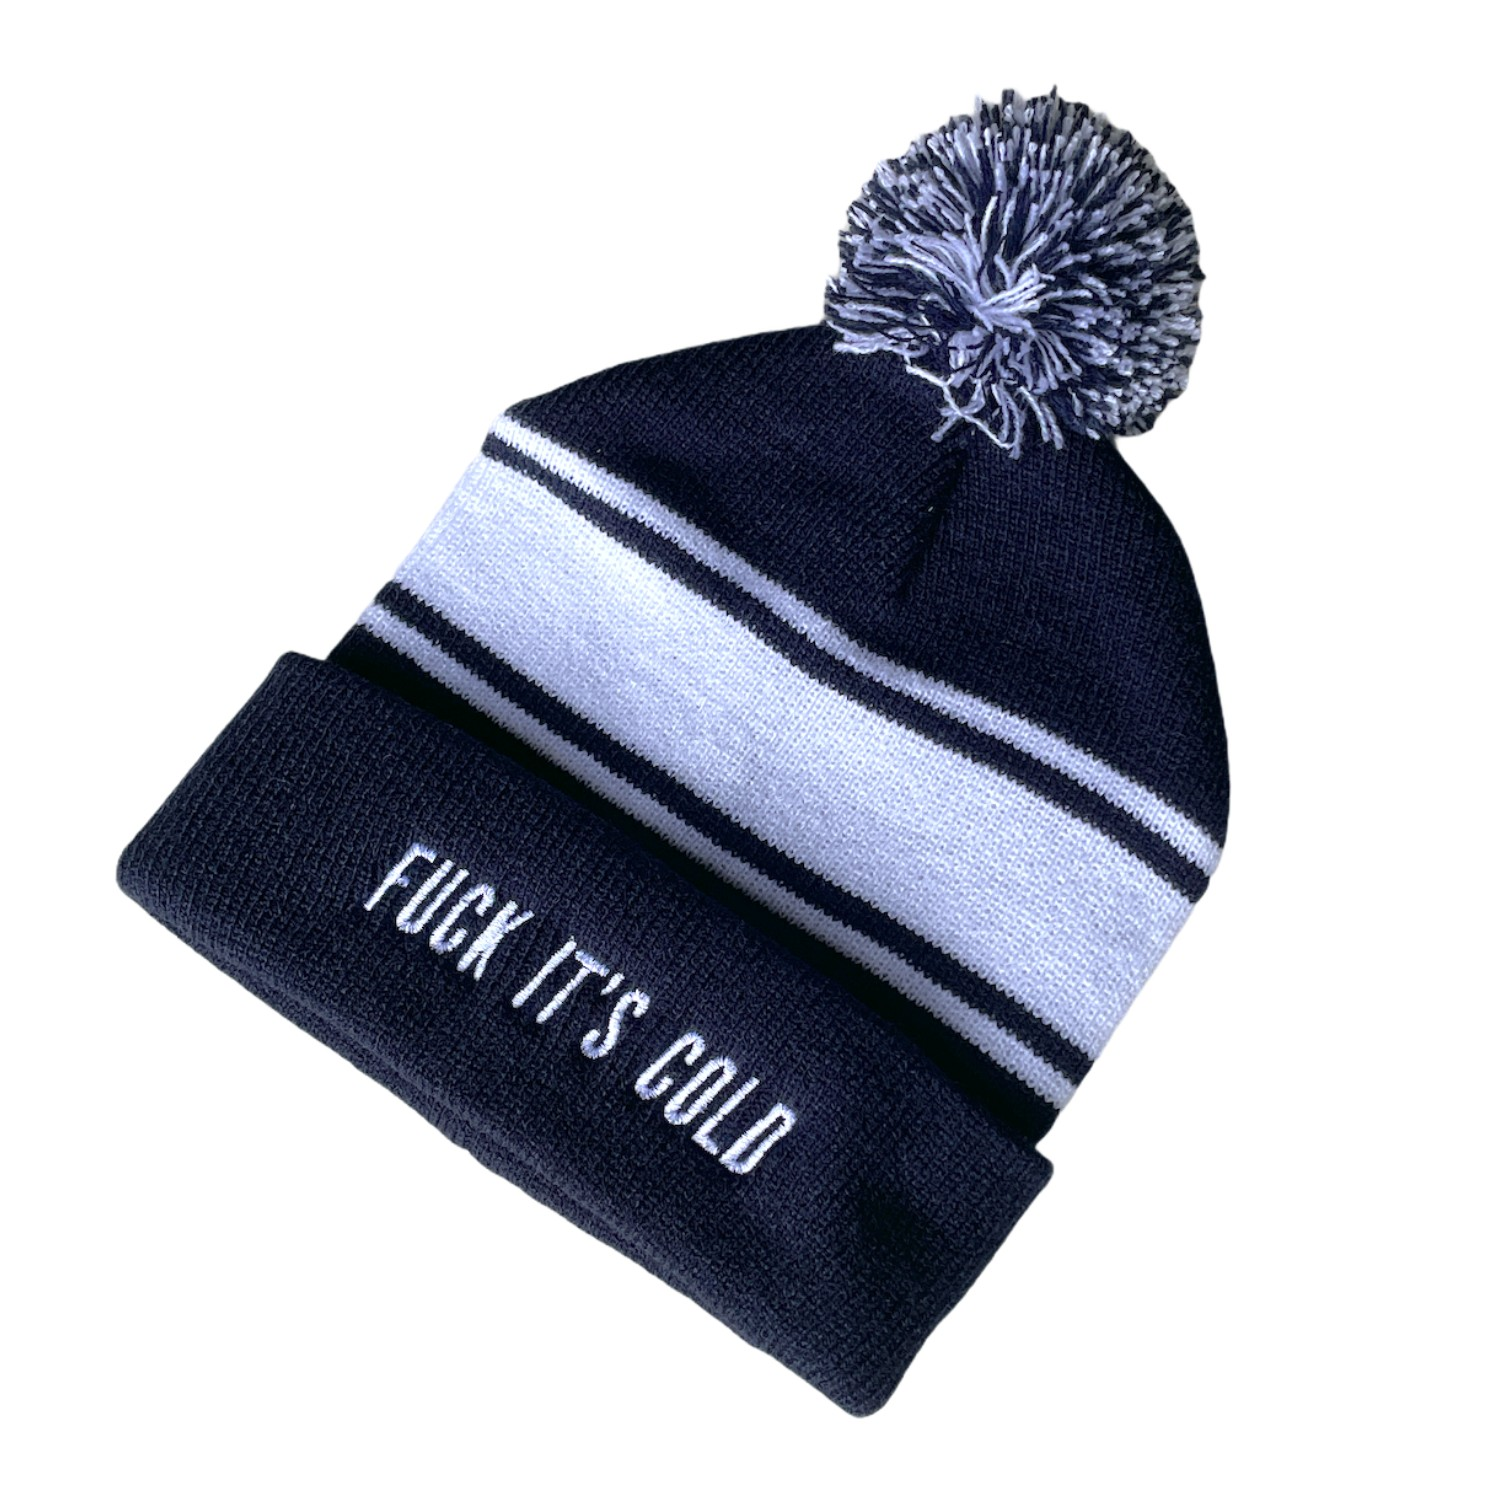 ITS COLD NAVY/WHITE BEANIE